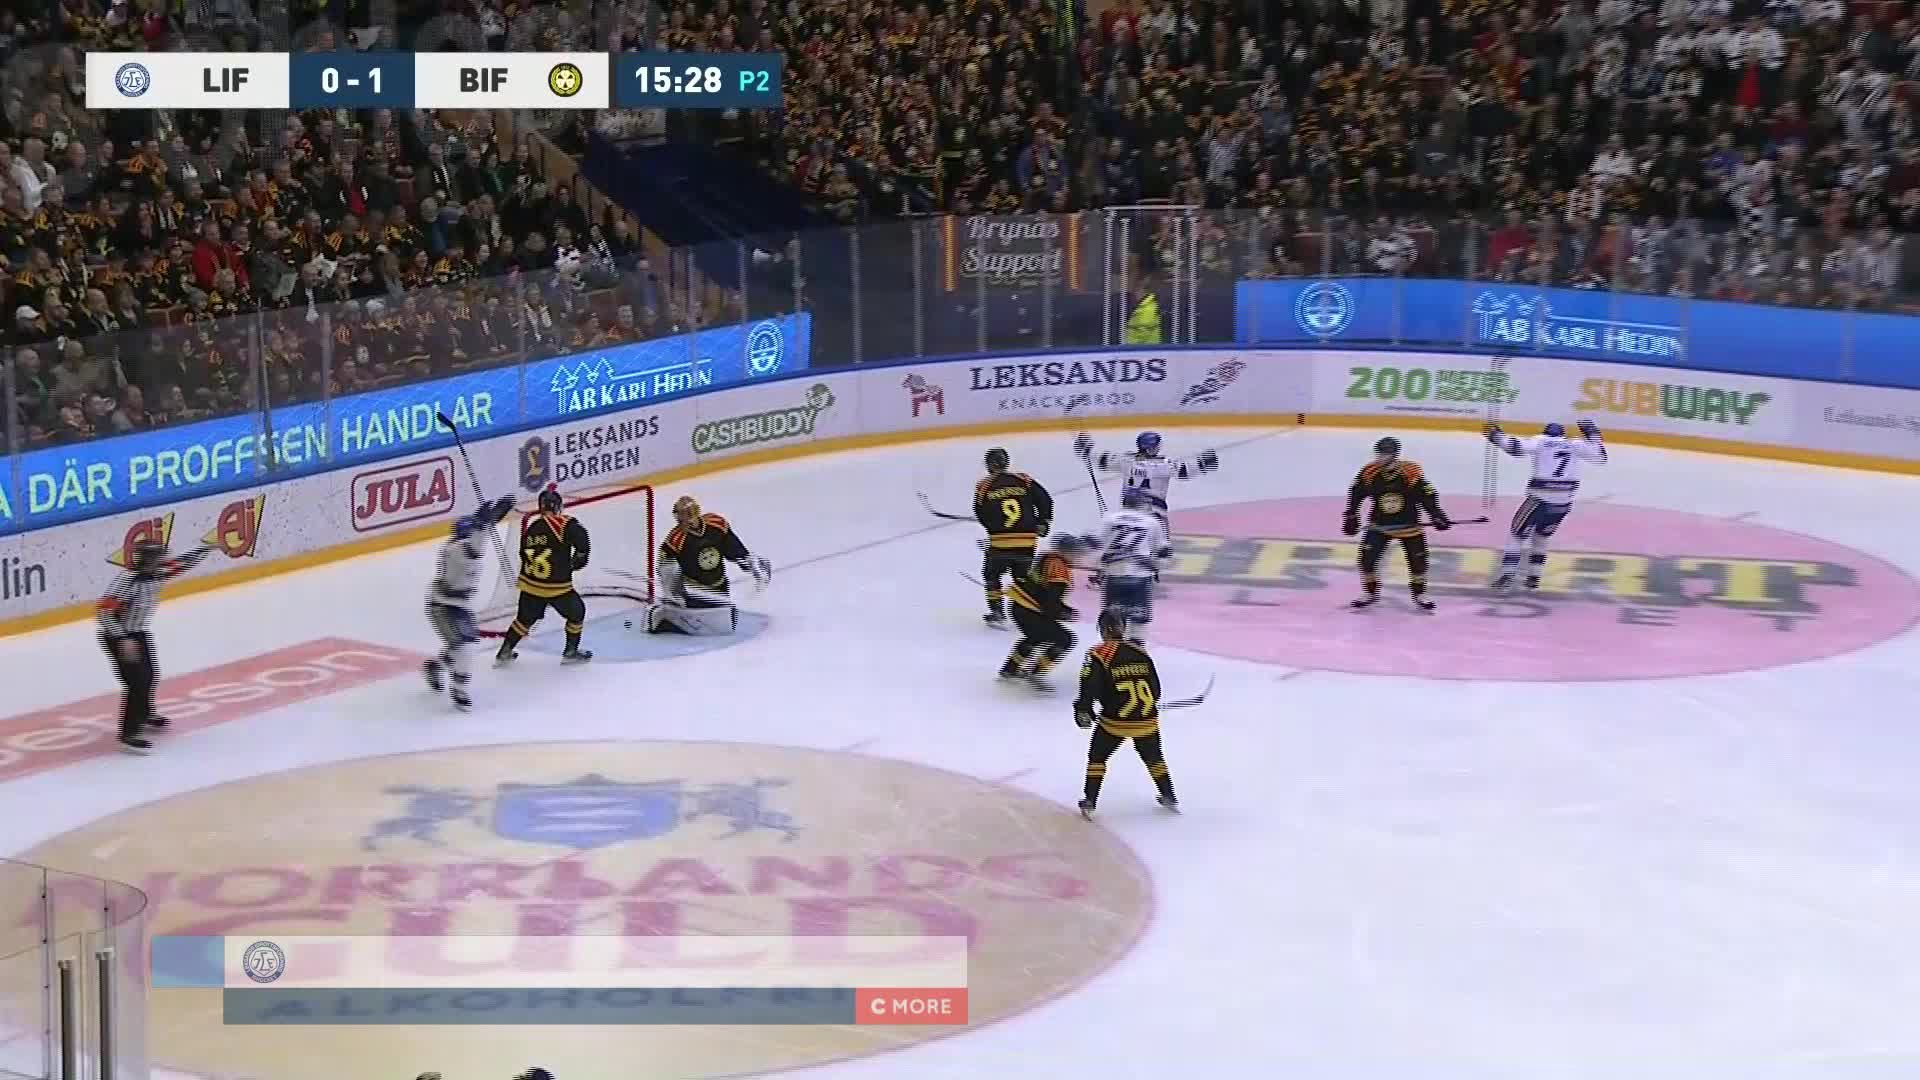 Leksands IF - Brynäs IF 1-1